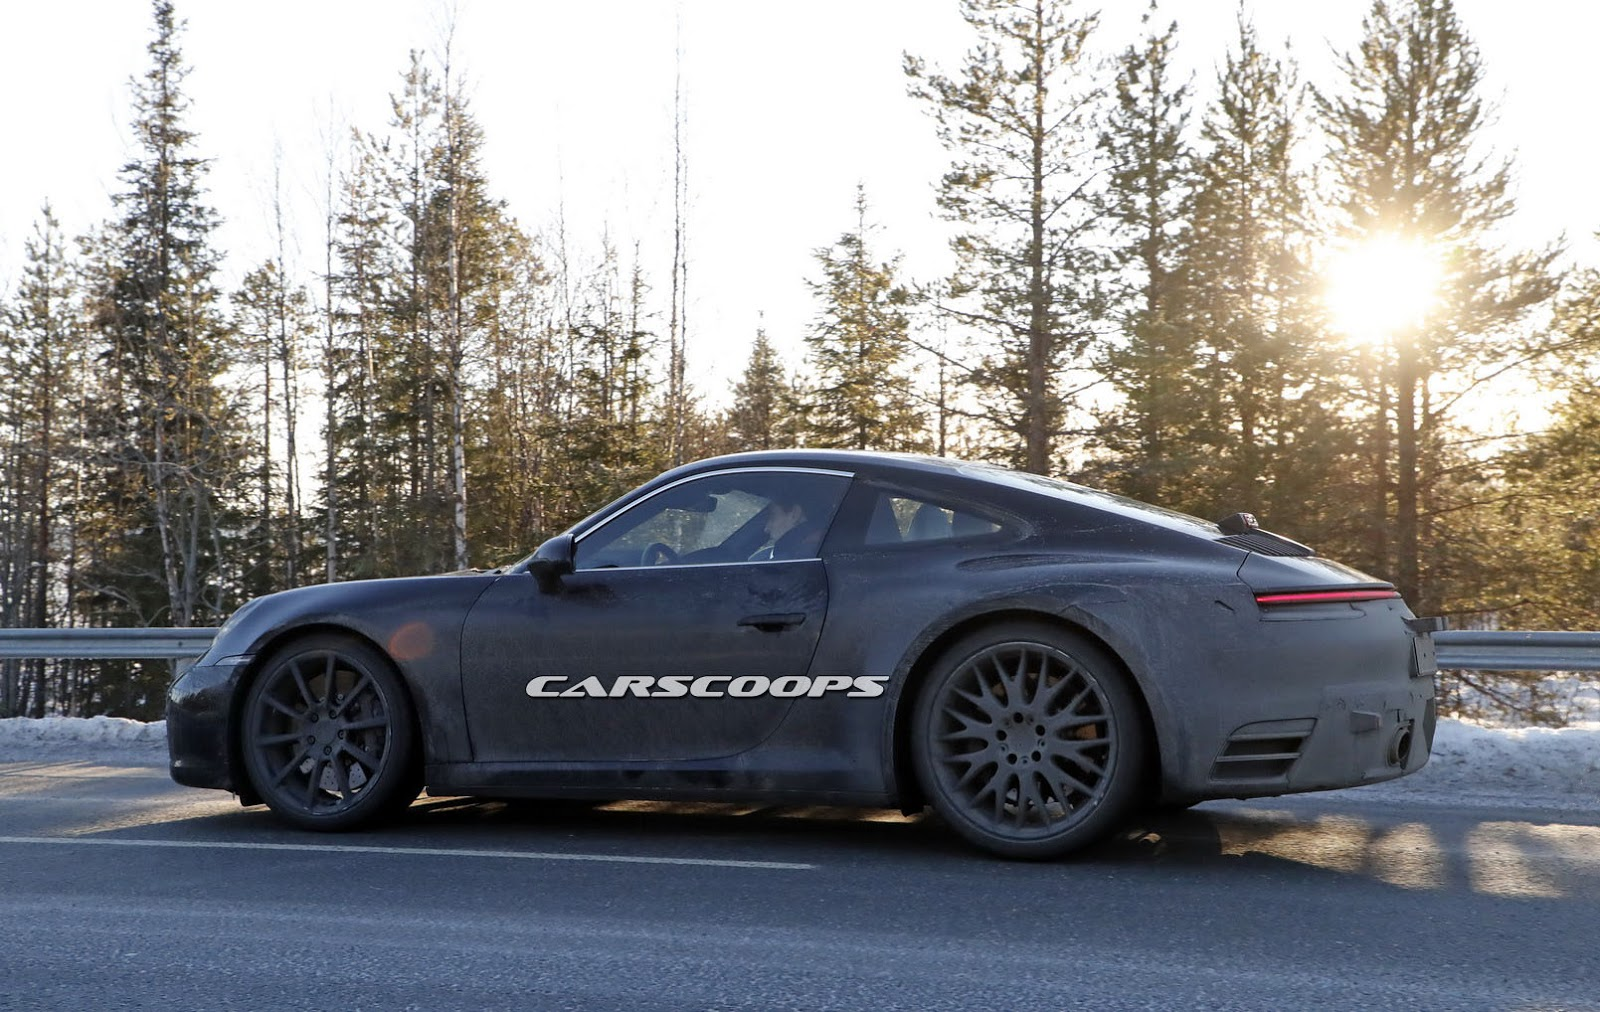 2019 Porsche 911 Spy Shots Highlight Its Mission E